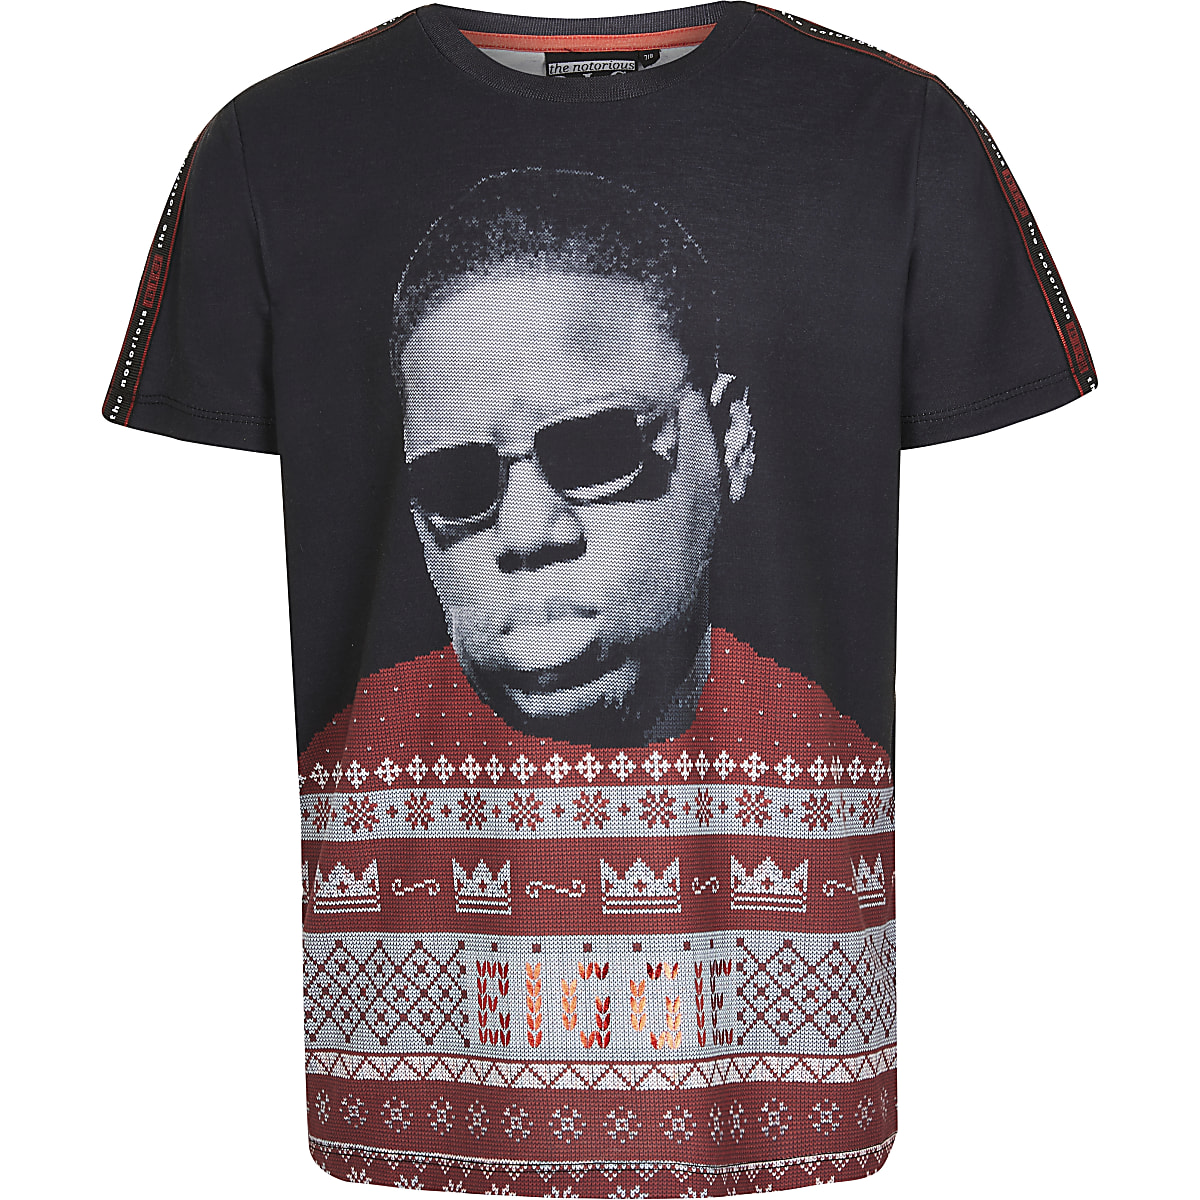 Boys Notorious B.I.G Christmas T-shirt